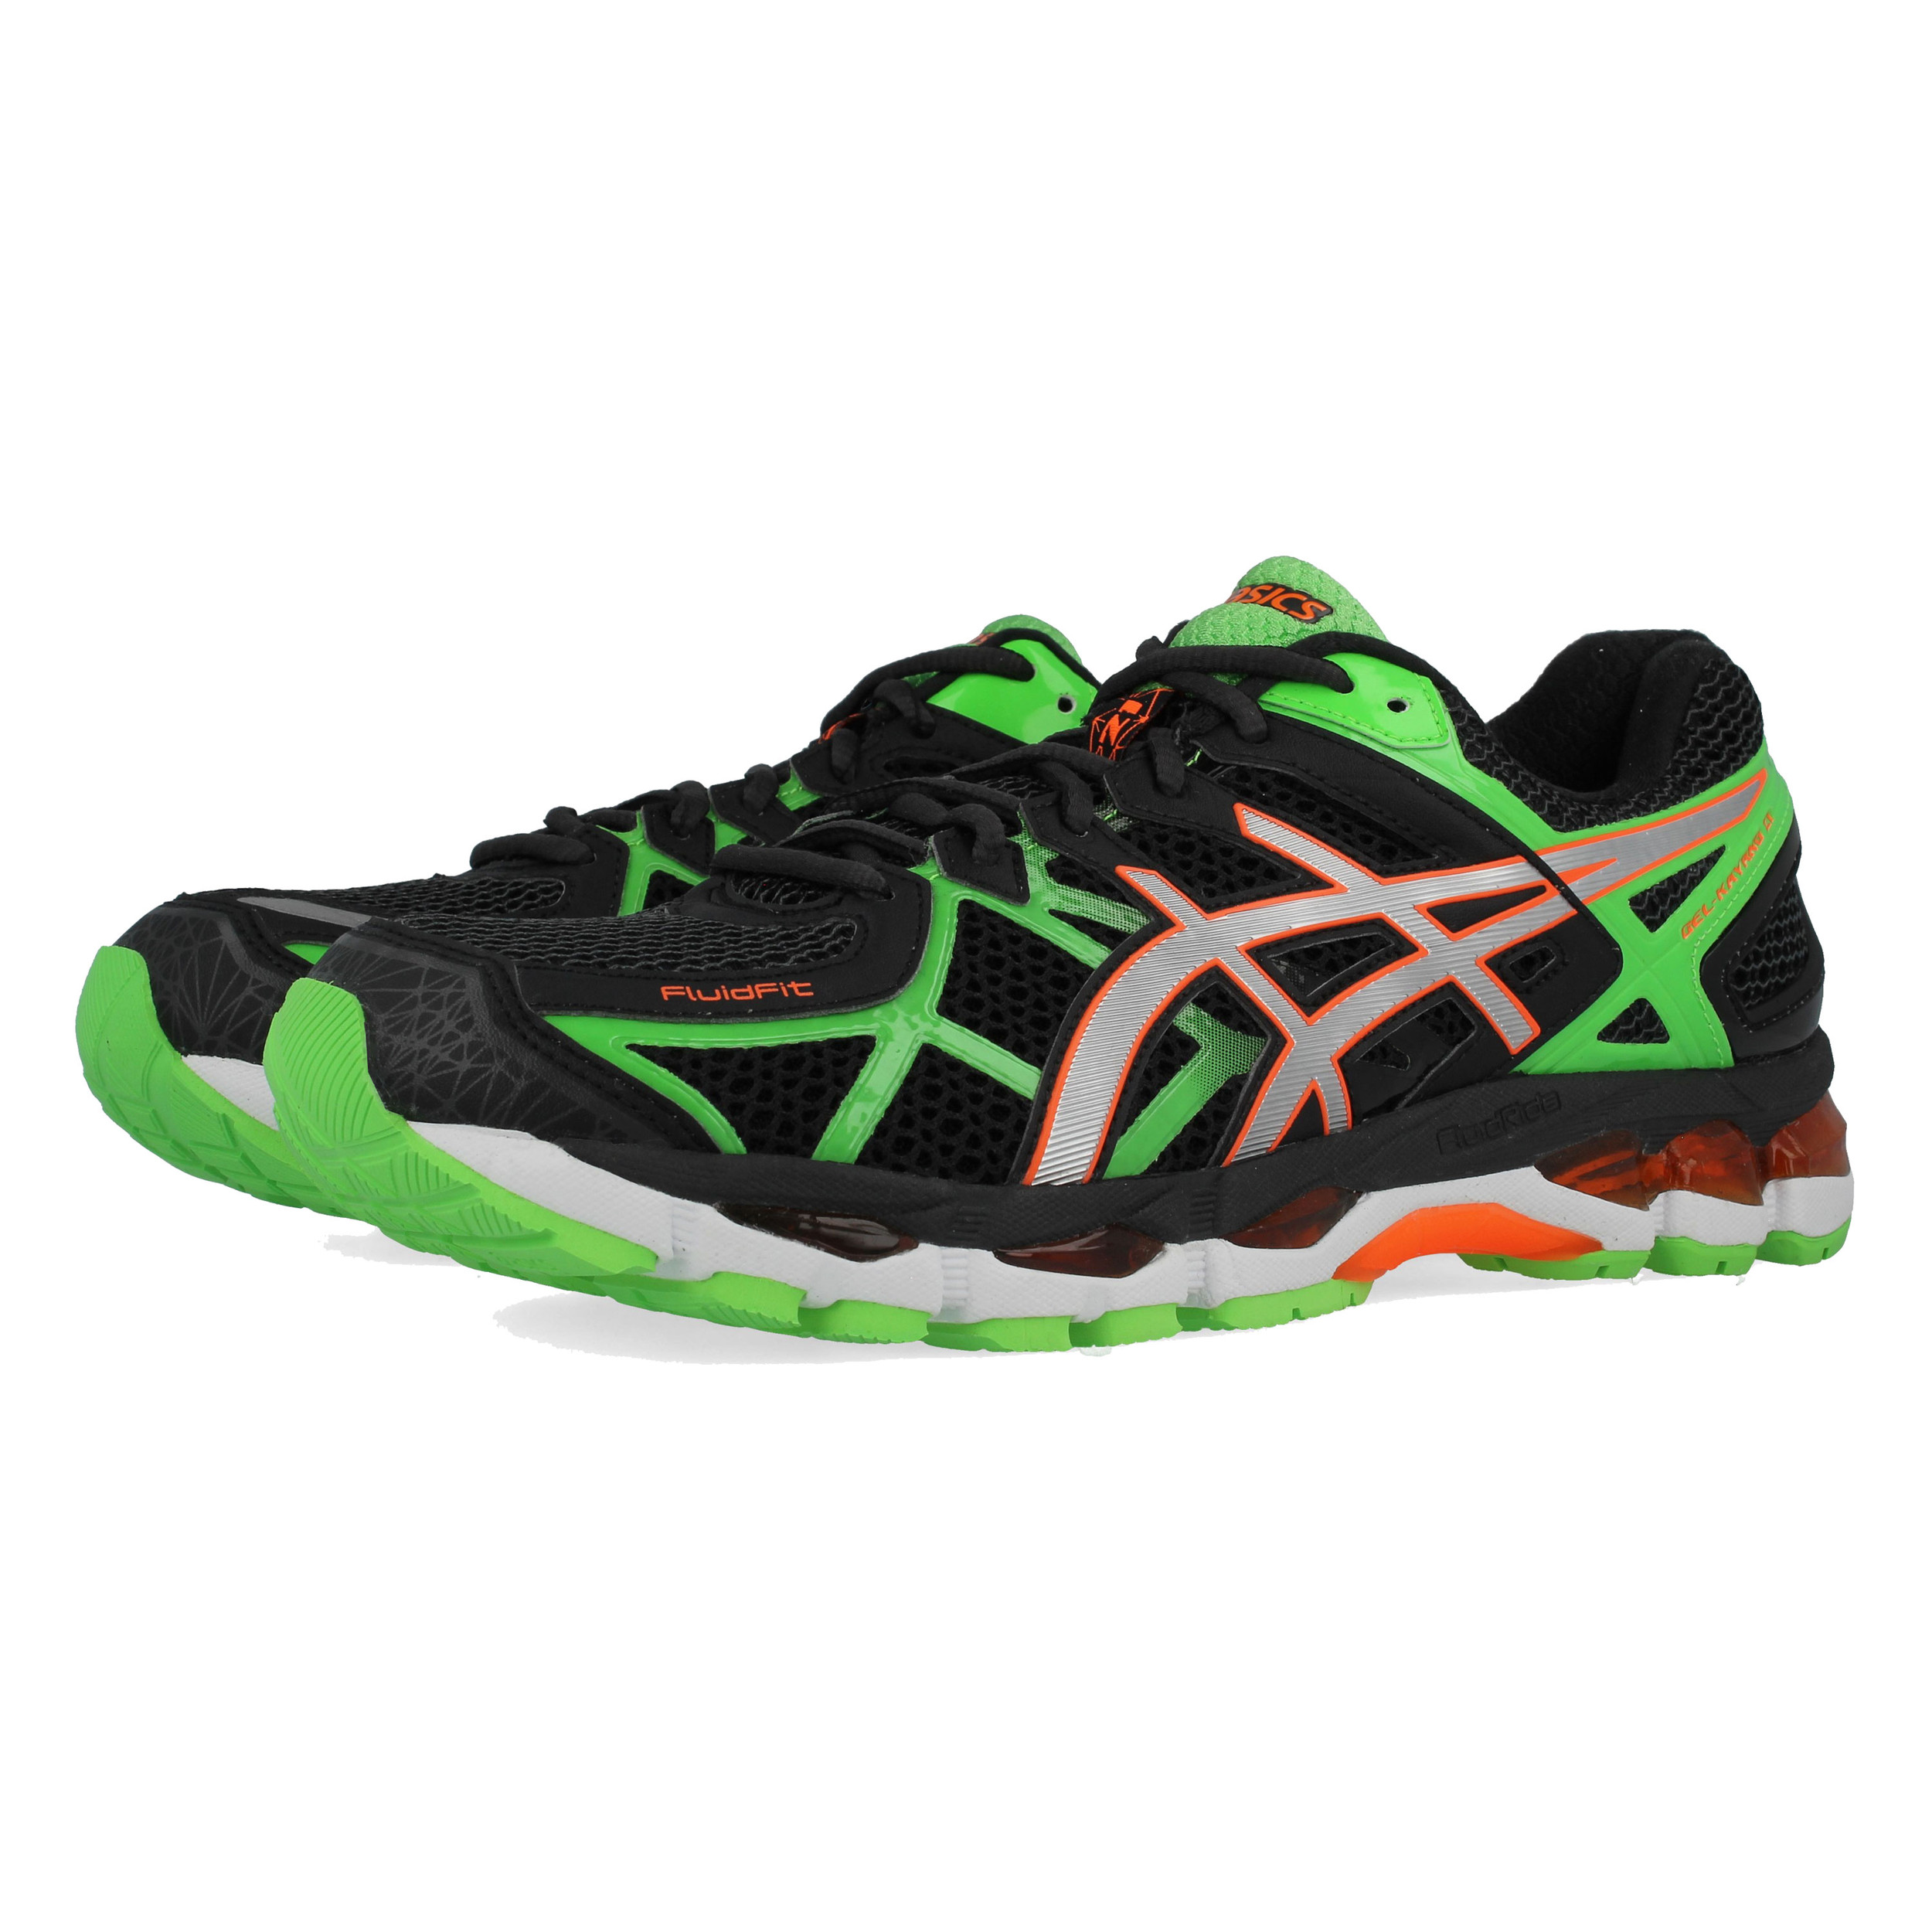 quality design 792af 29b4a Asics Mens Gel-Kayano 21 Running Shoes Trainers Sneakers Black Green Sports